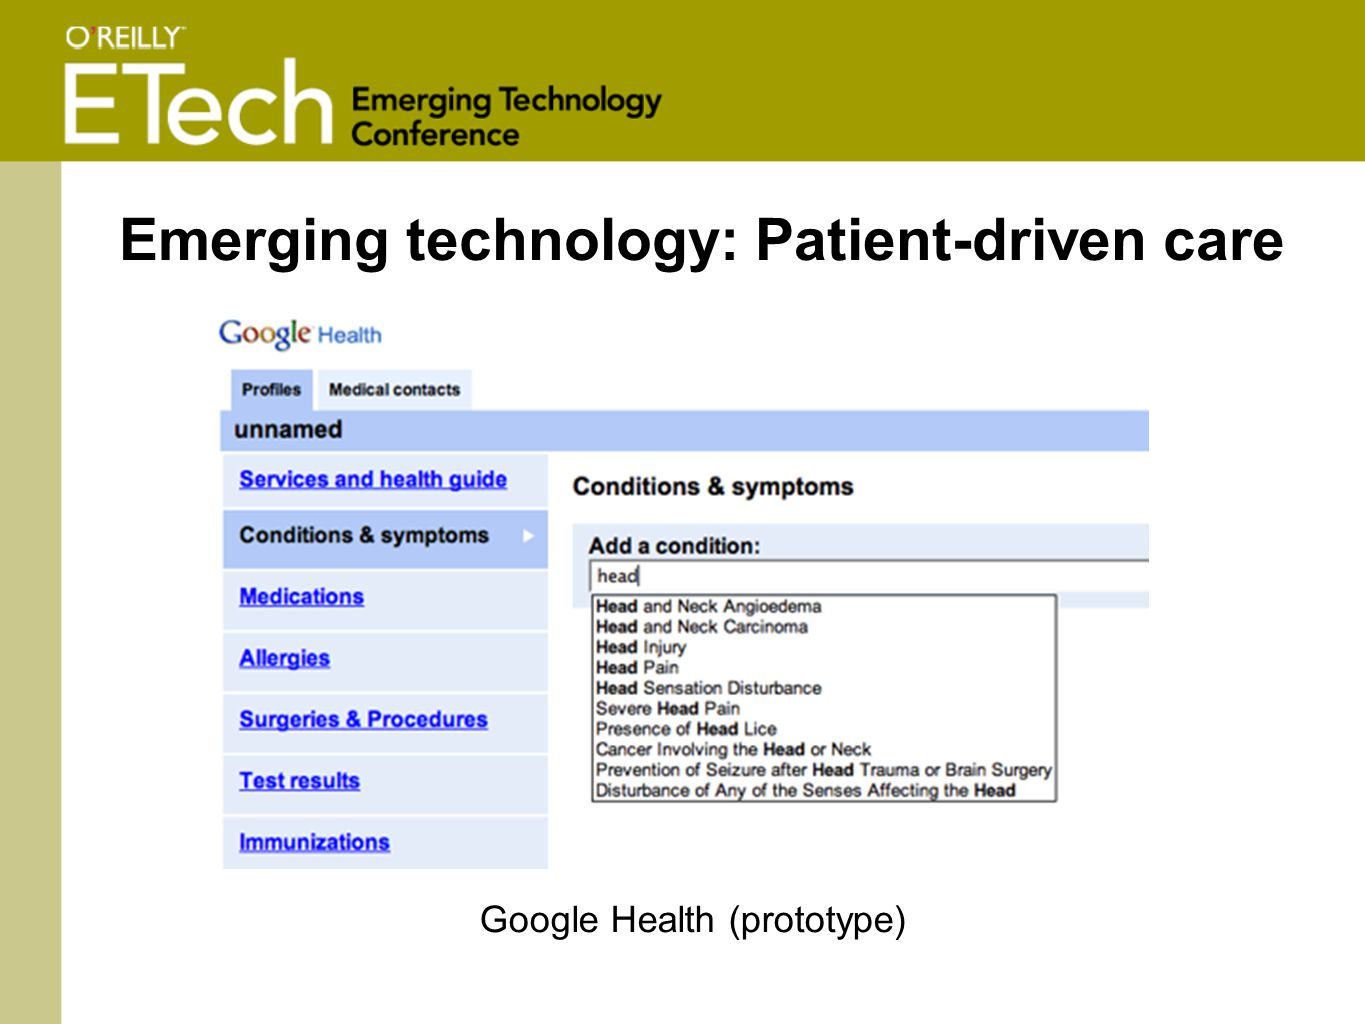 Google Health (prototype) Emerging technology: Patient-driven care